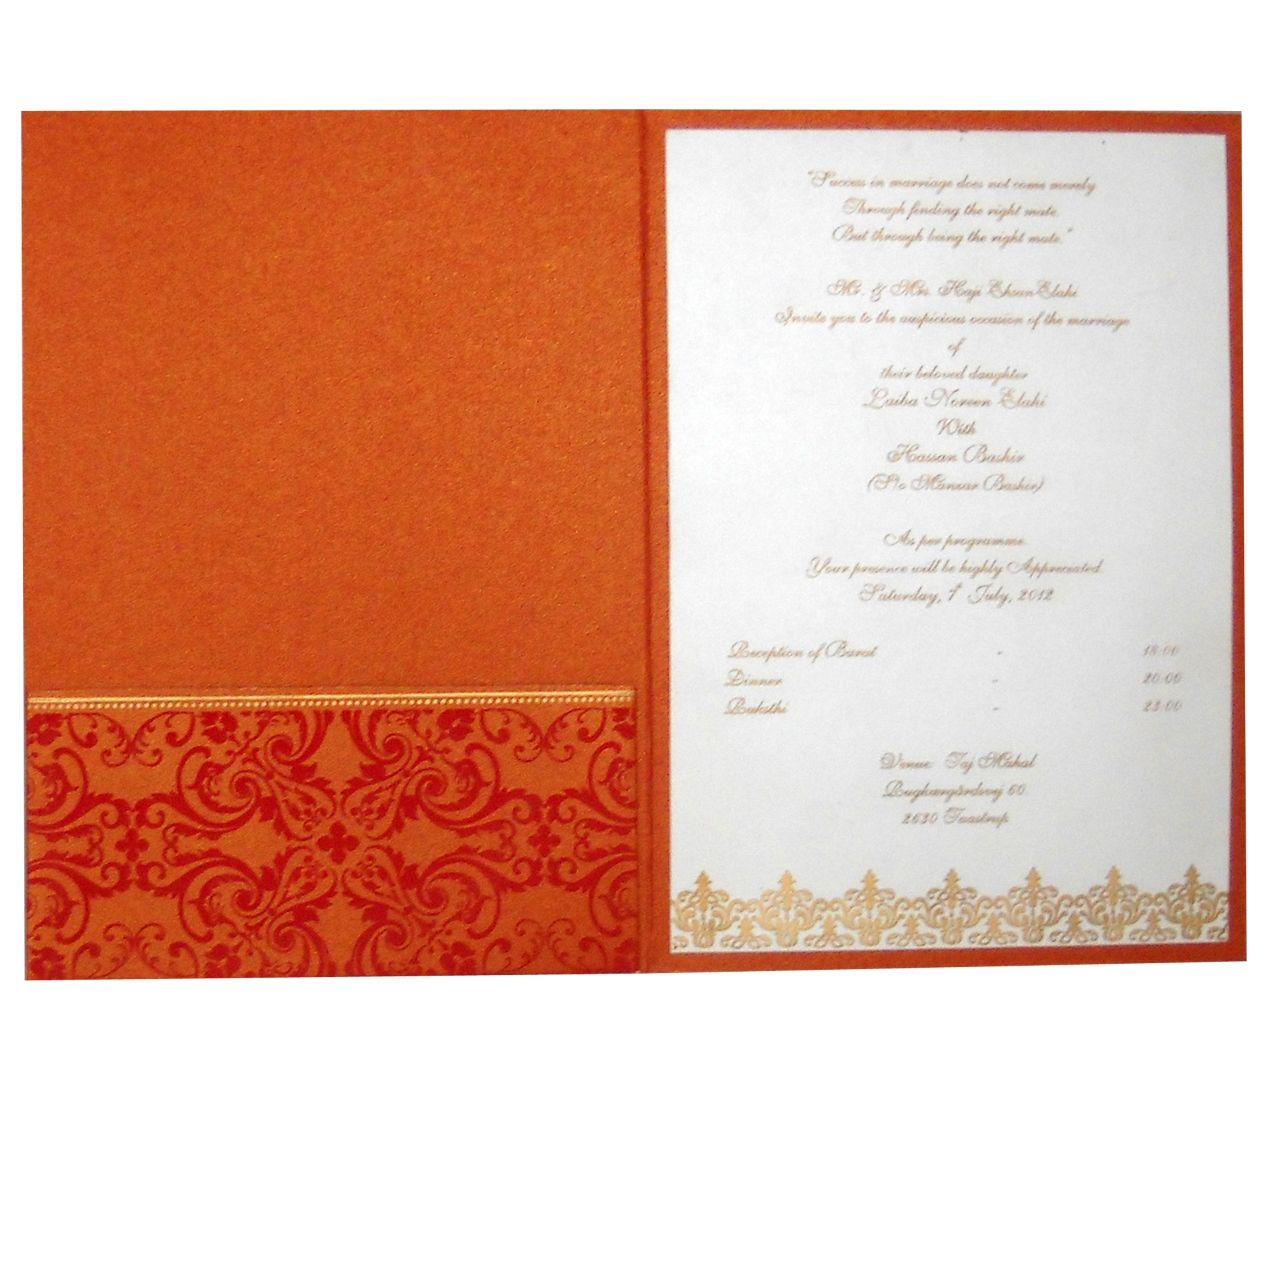 Latest Trendy Indian Wedding Card Design in Orange Color | Indian ...